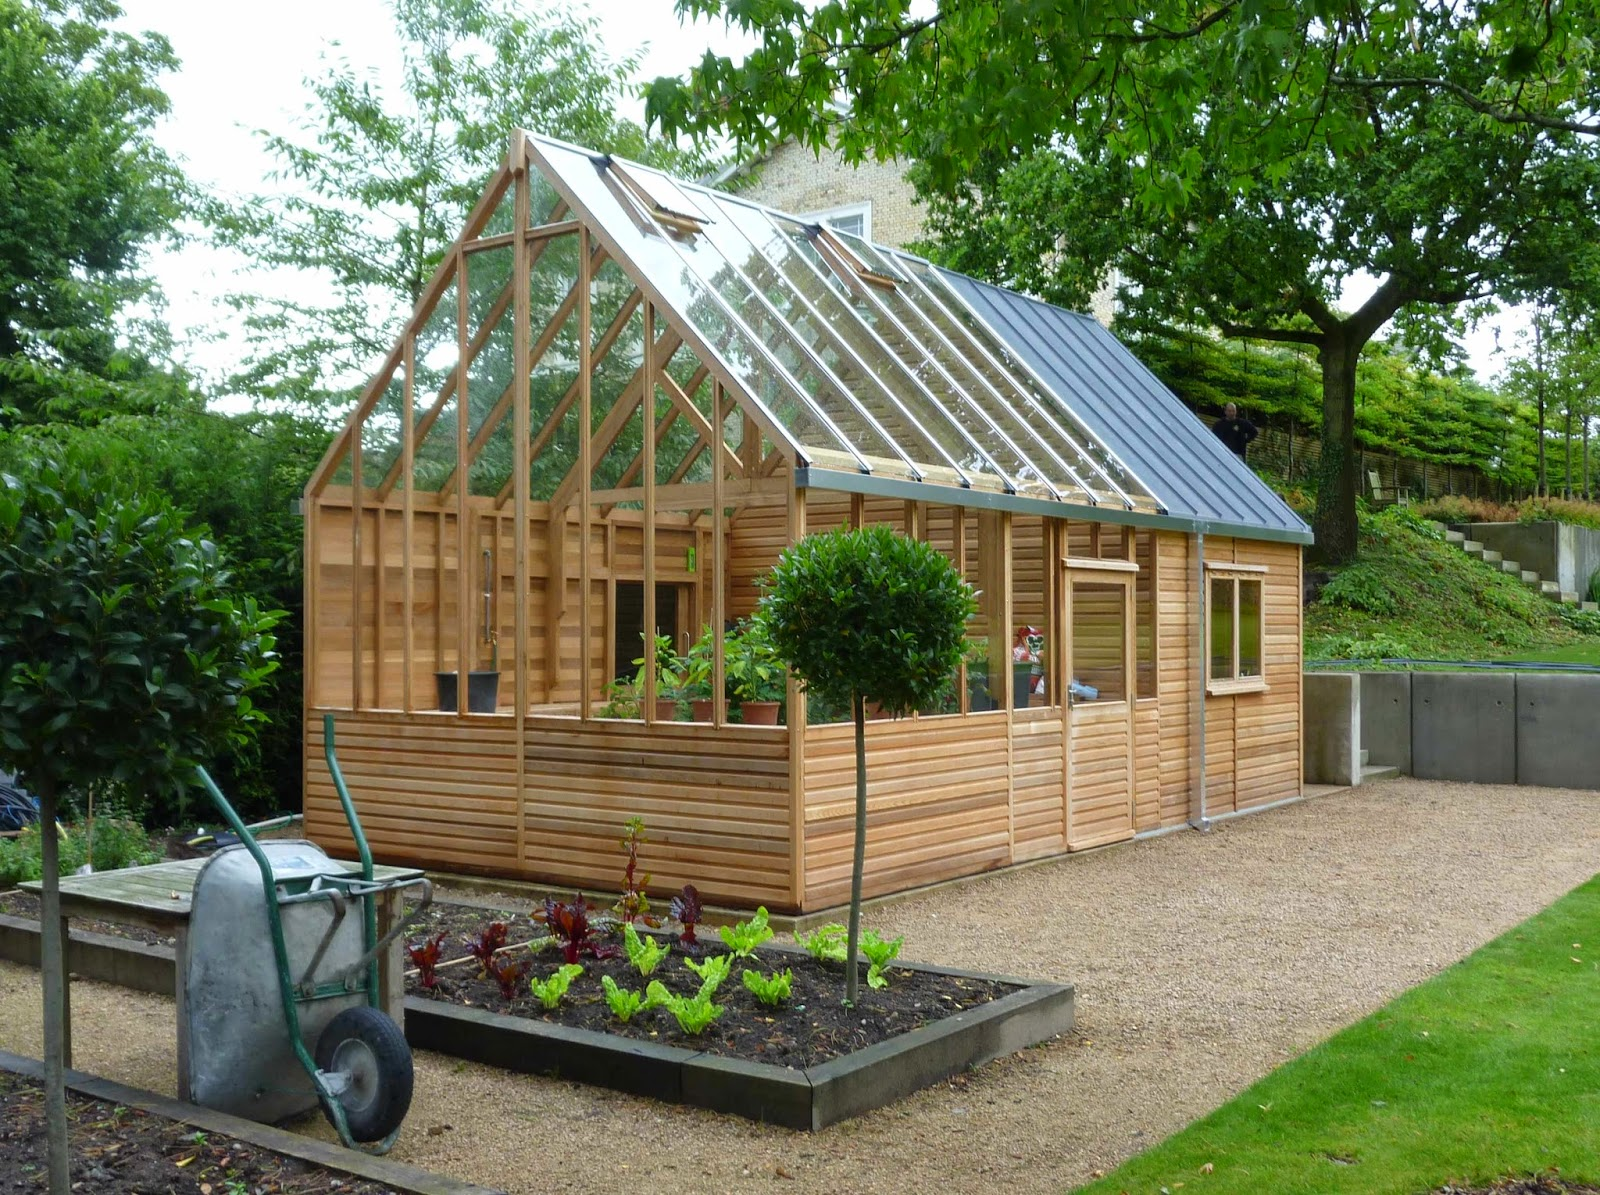 13 great diy greenhouse ideas instant knowledge for Build a green home